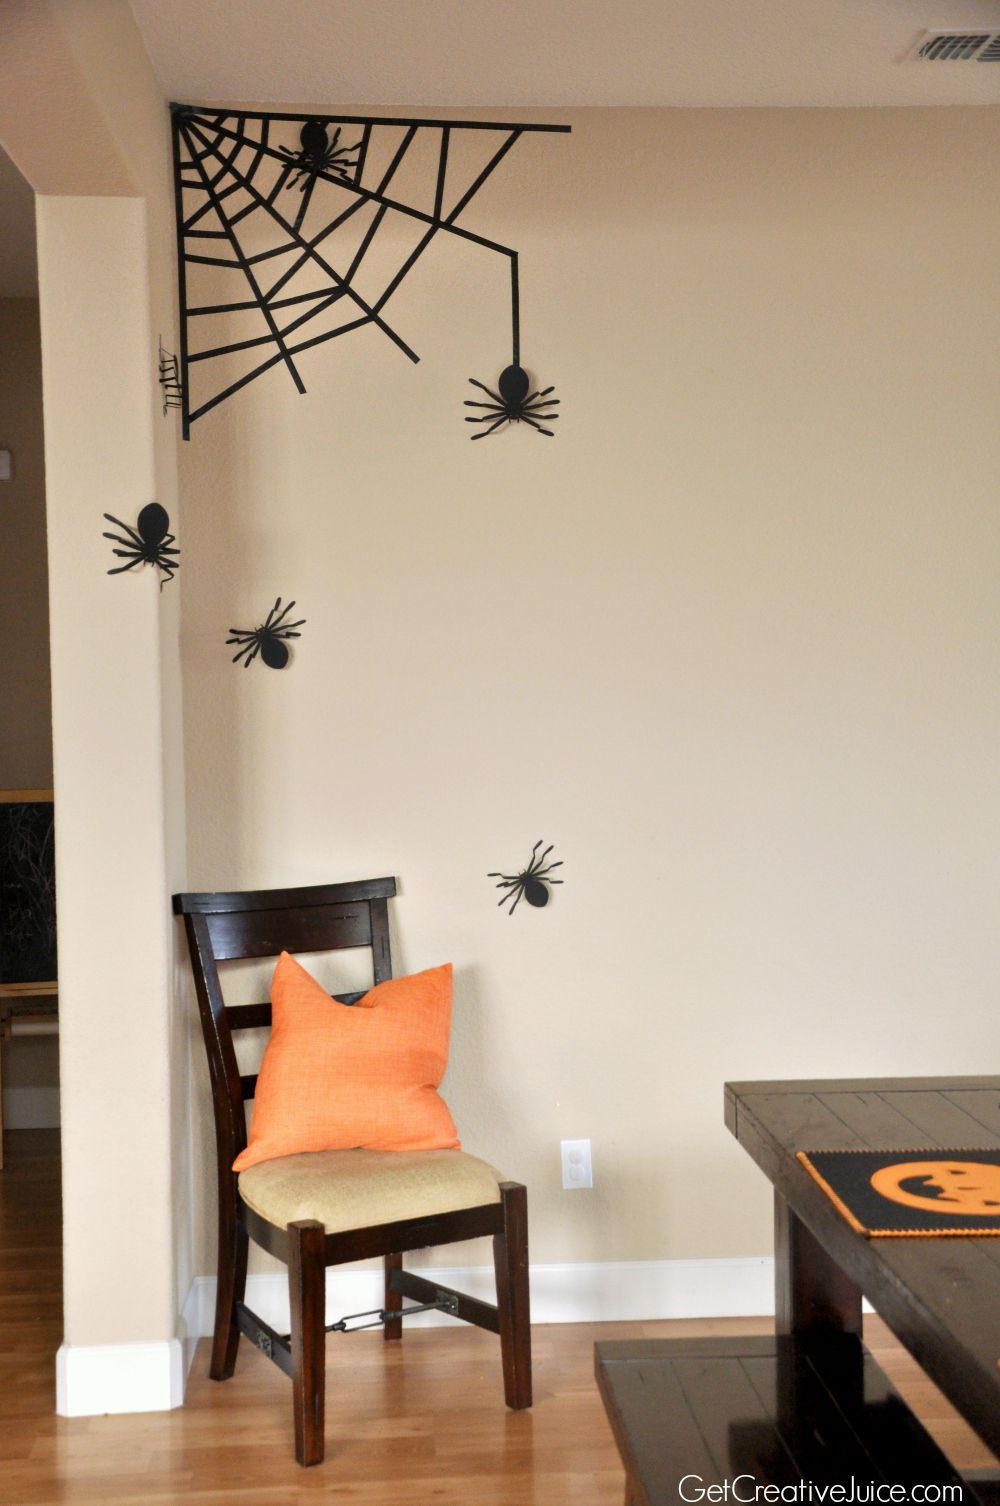 easy diy ideas for halloween decorations for your home washi tape spider web paper spiders easy tabletop decor halloween place settings - Decorate For Halloween Cheap